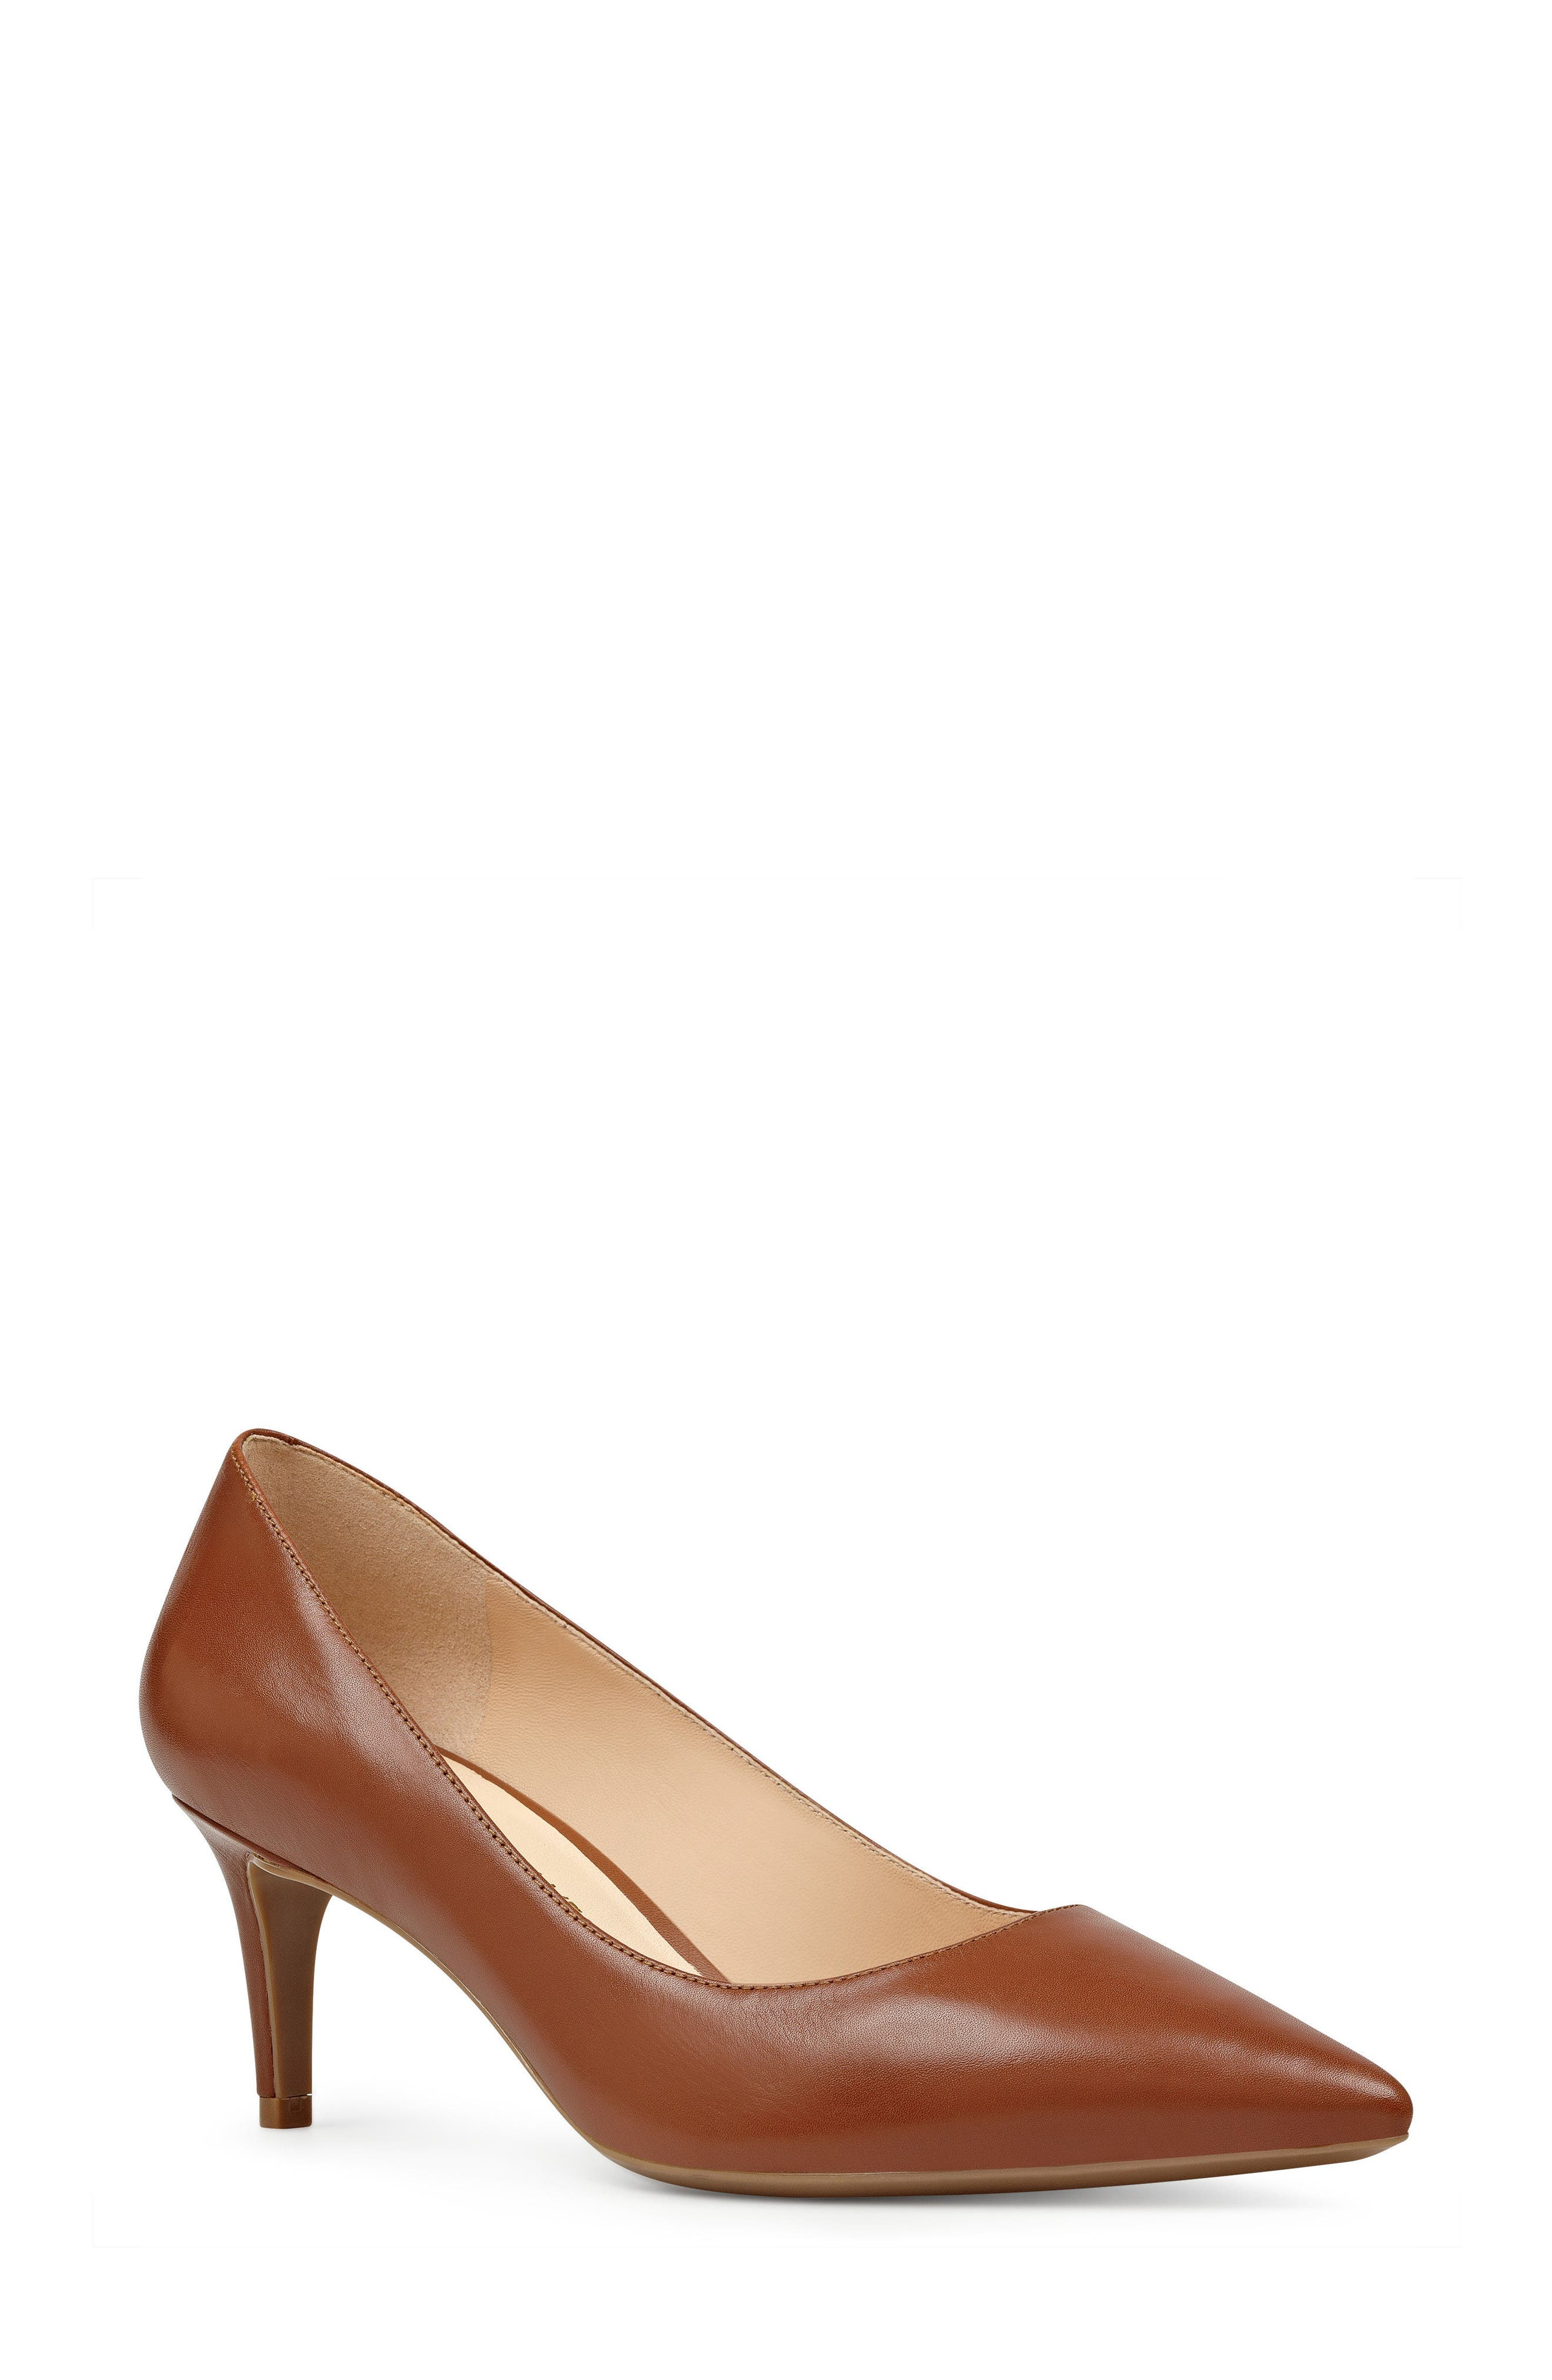 Soho Pointy Toe Pump,                             Main thumbnail 8, color,